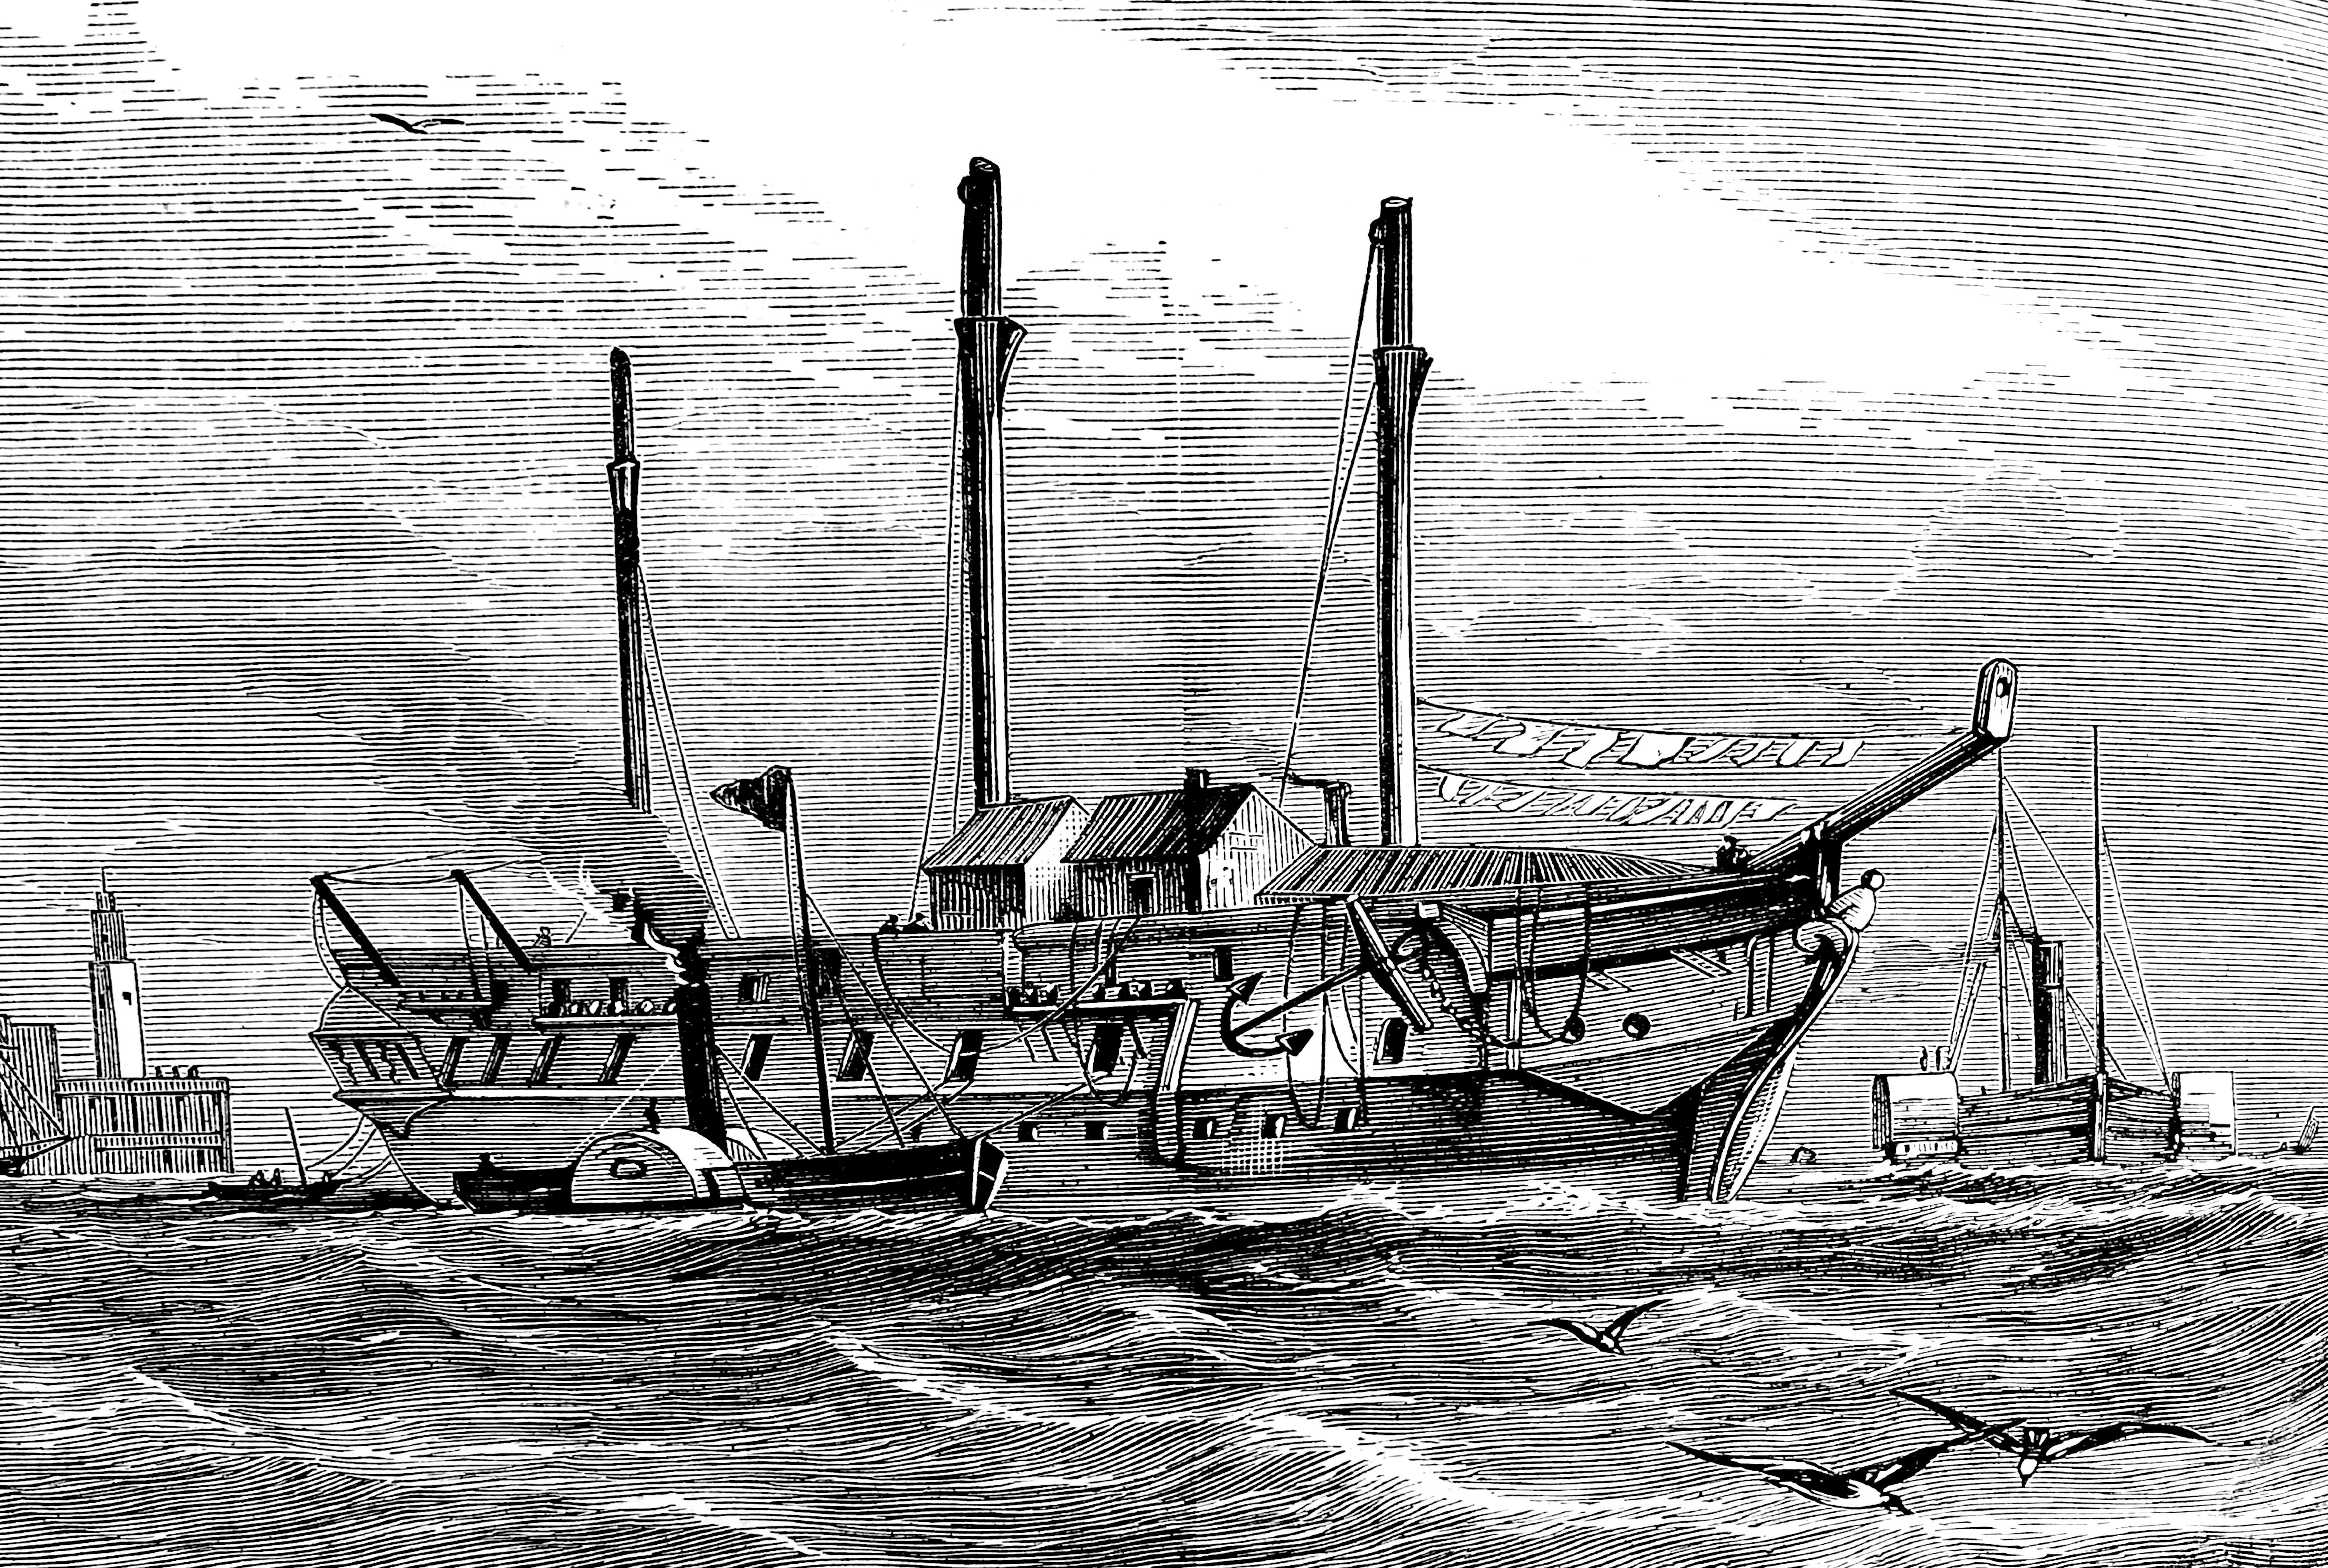 The Effects of Steamboats on the Industrial Revolution